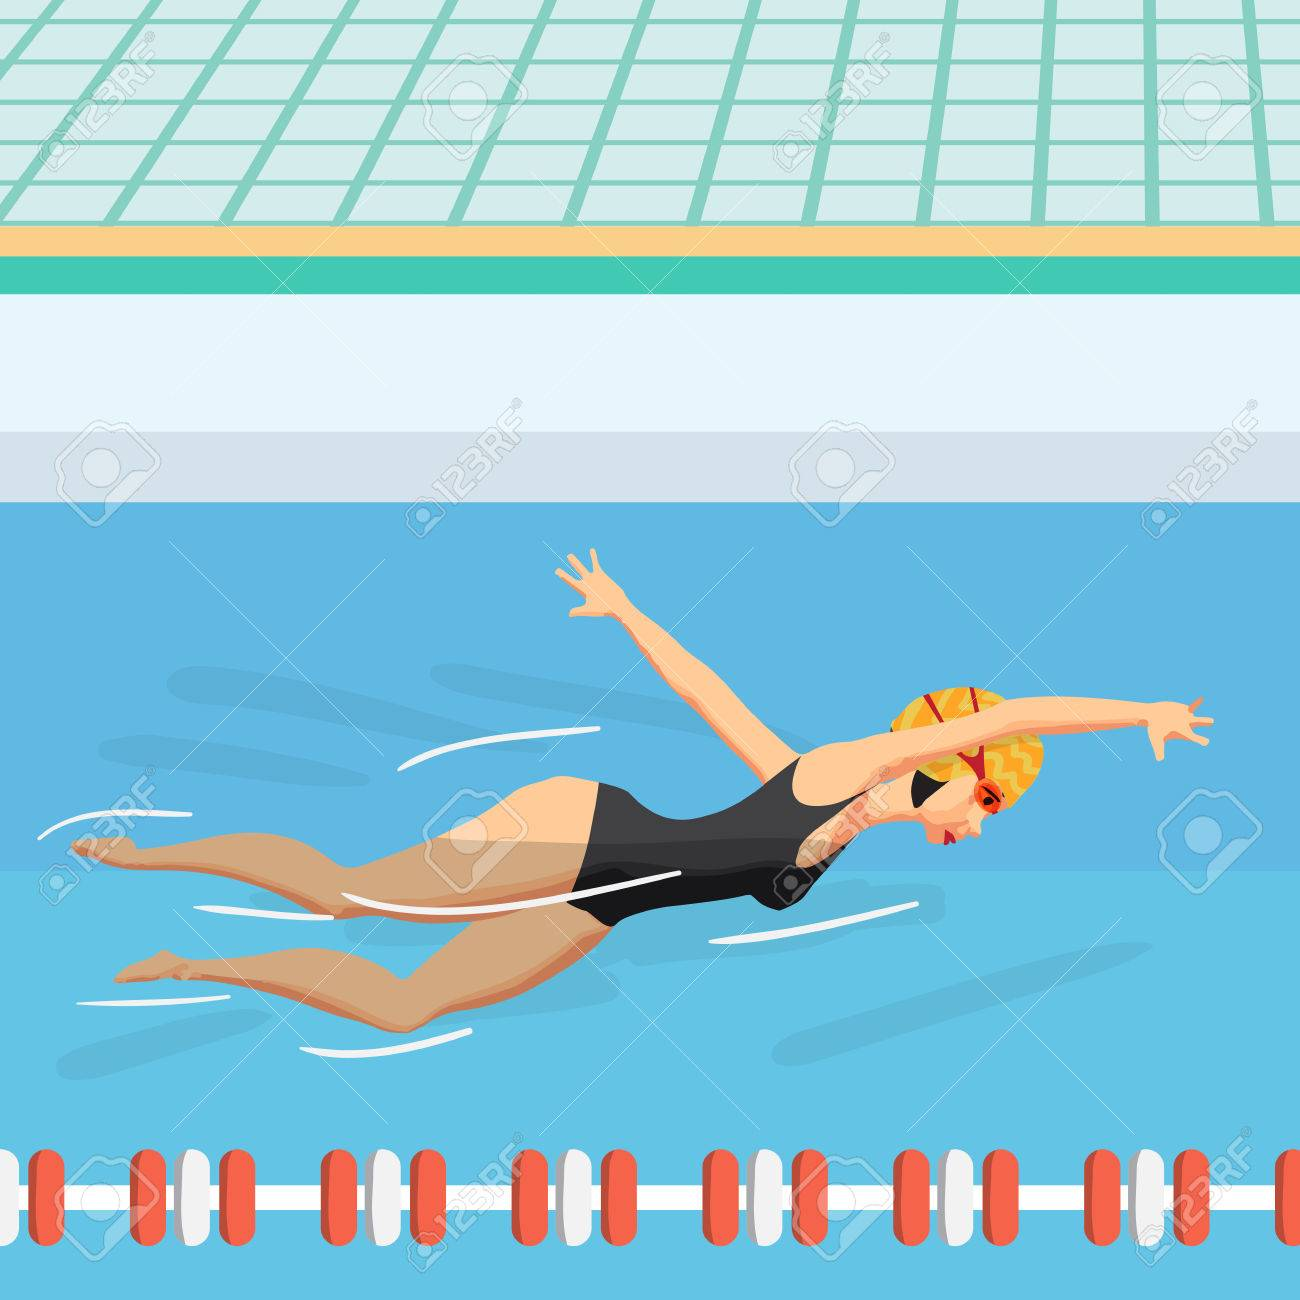 Young Woman In Sports Swimsuit Swims In The Pool Front Crawl Royalty Free Cliparts Vectors And Stock Illustration Image 70843193